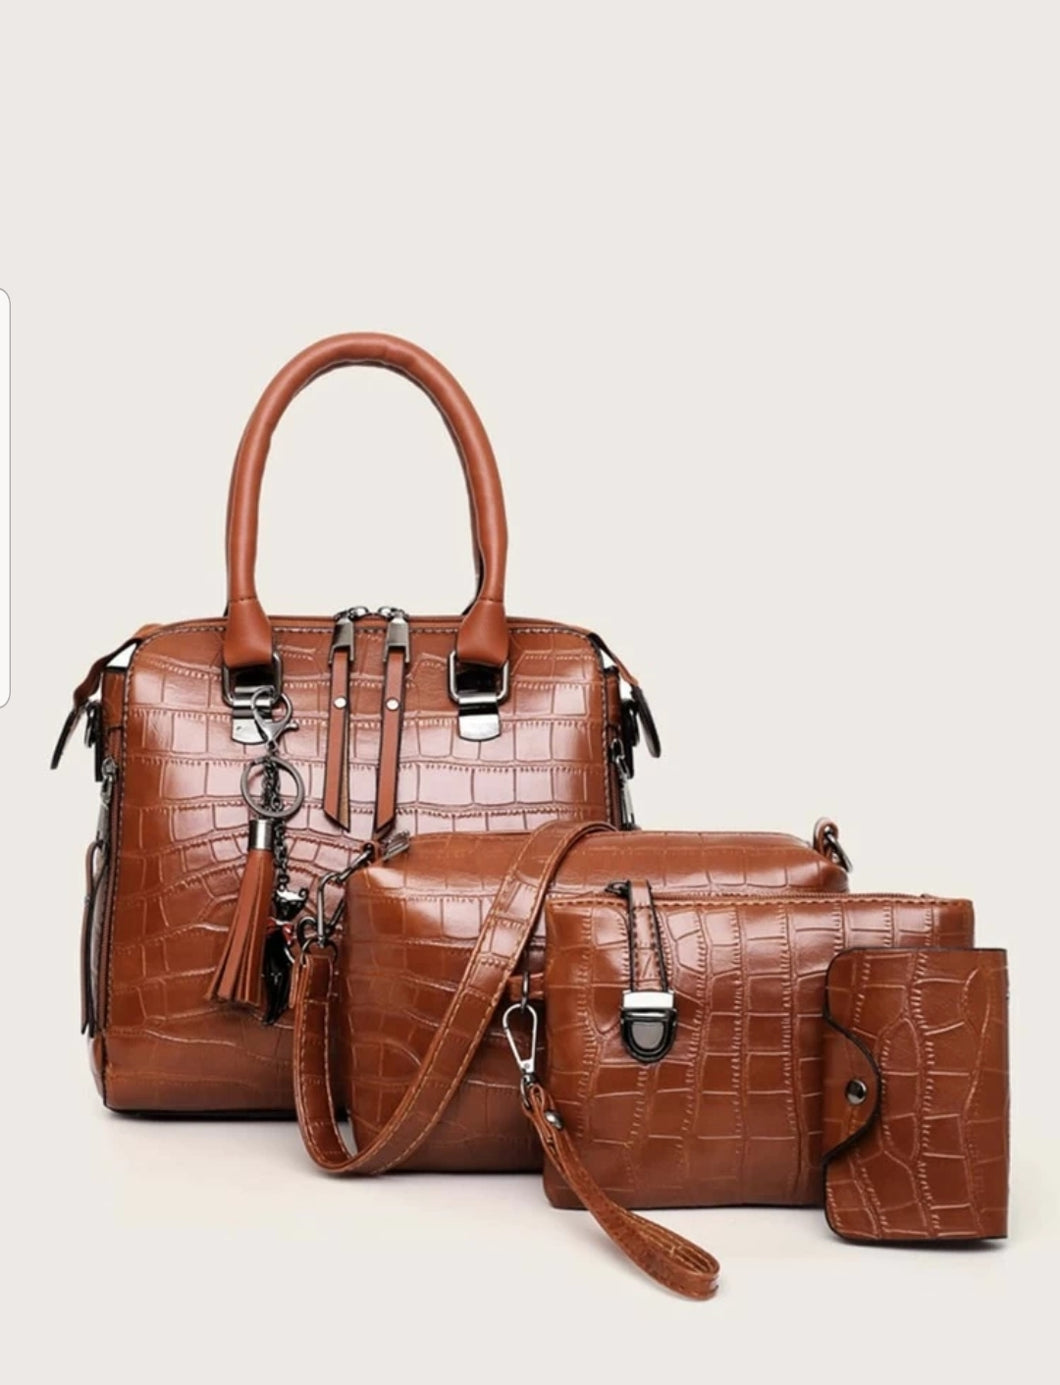 4 Pcs Dark Hazel Croc Bag Set